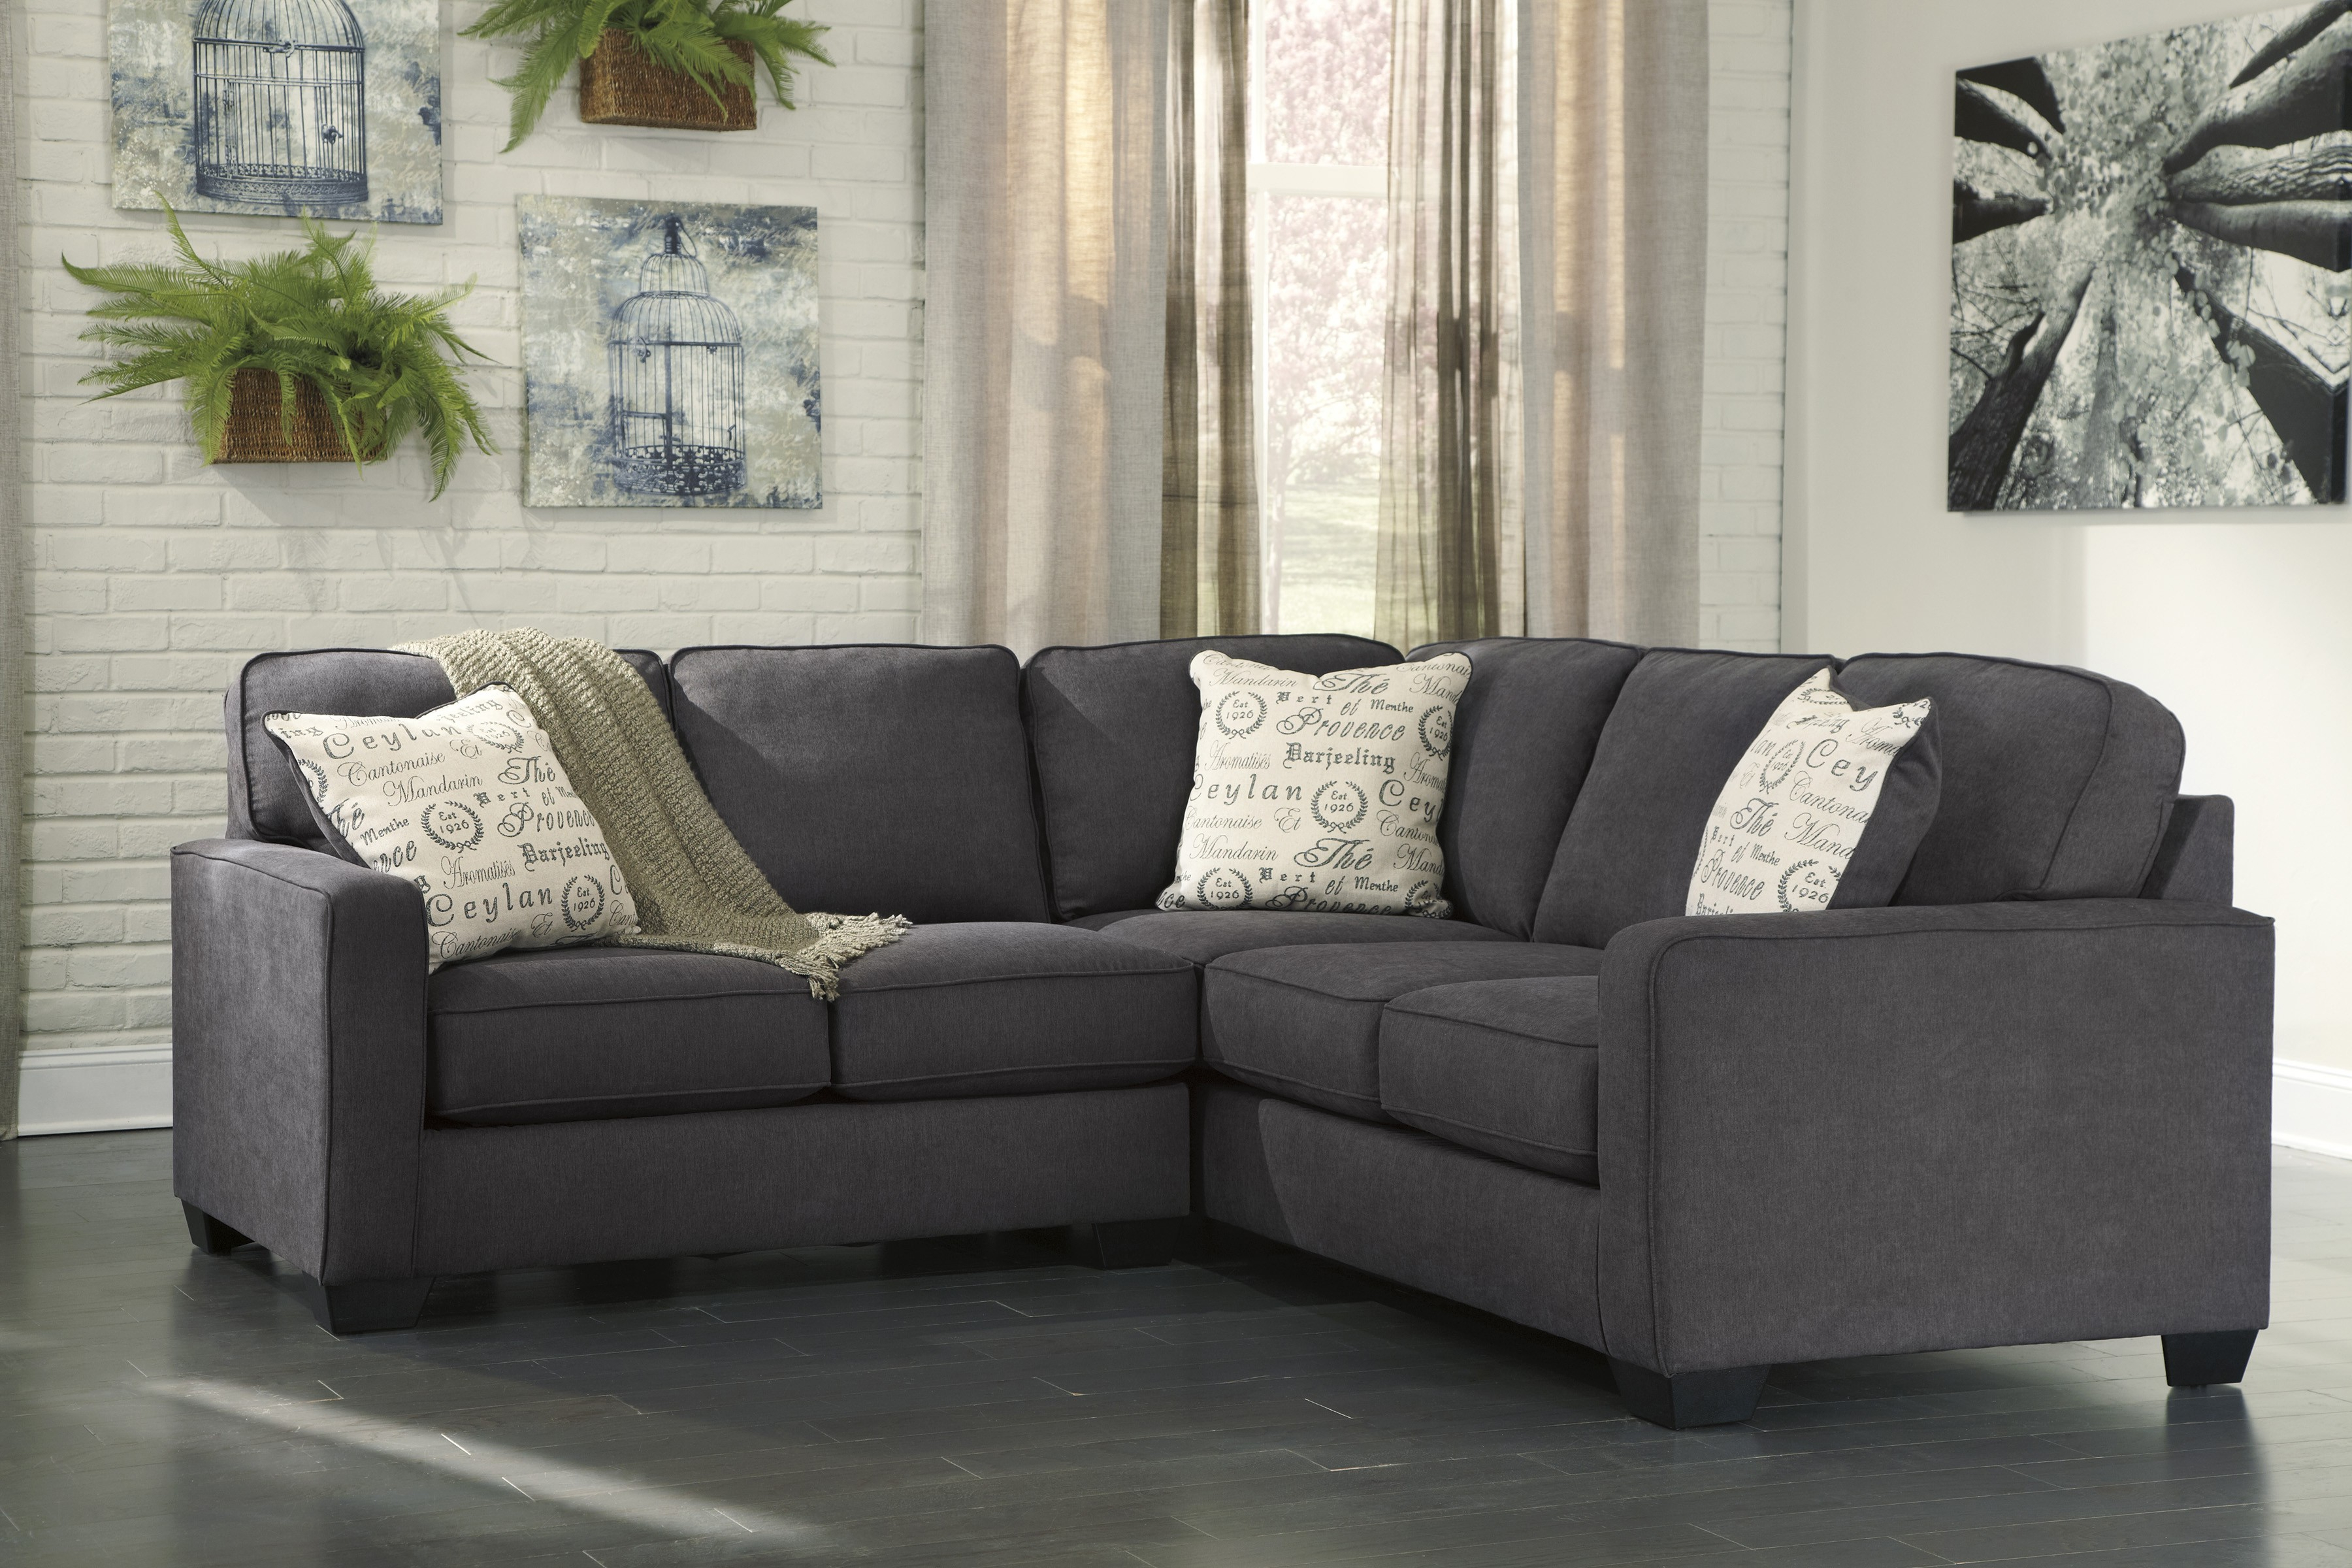 Widely Used Aspen 2 Piece Sleeper Sectionals With Laf Chaise Pertaining To Alenya Charcoal Piece Sectional Sofa For Furnitureusa Raf Love (View 20 of 20)